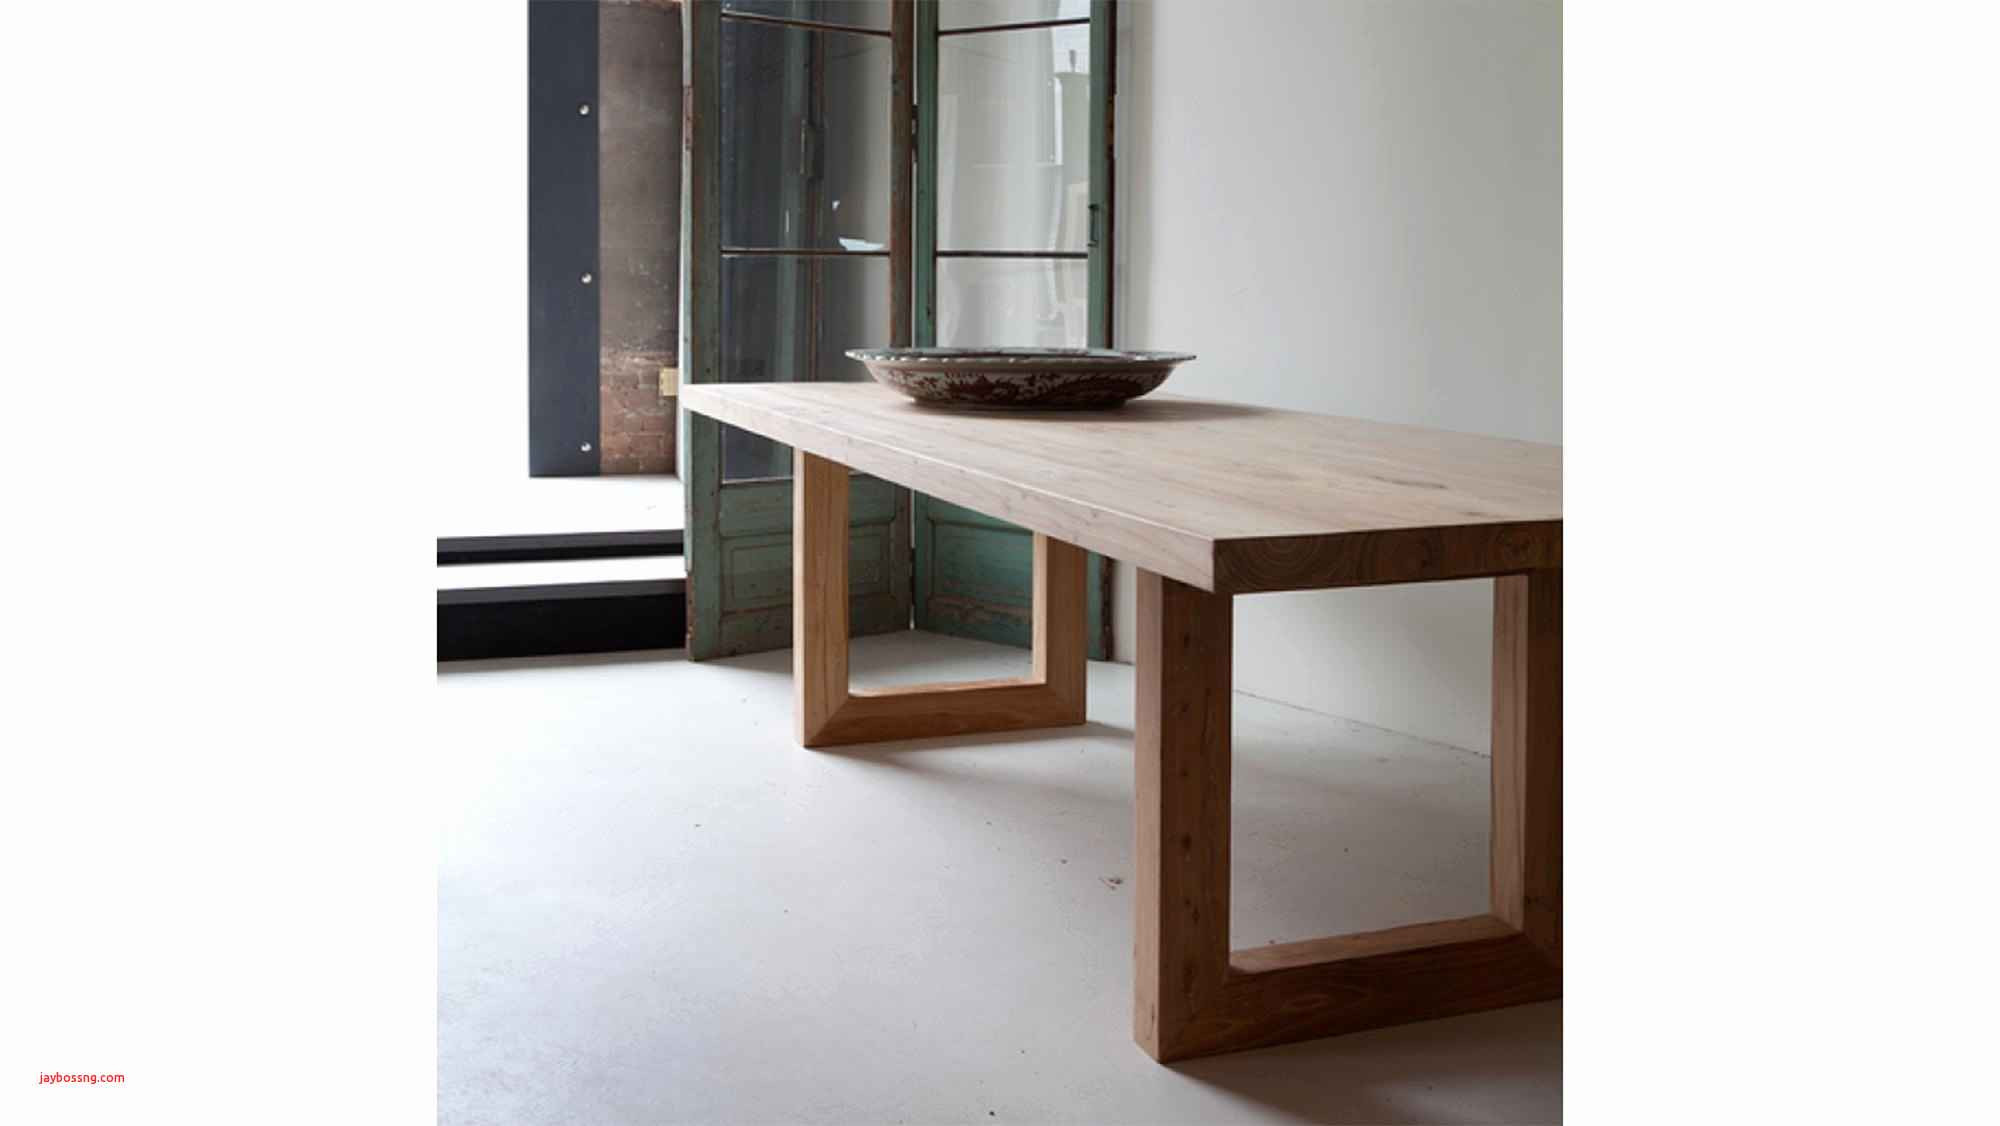 wood floor vase of table desk in excellent the best dining room tables fresh living throughout table desk in excellent the best dining room tables fresh living room white floor vase